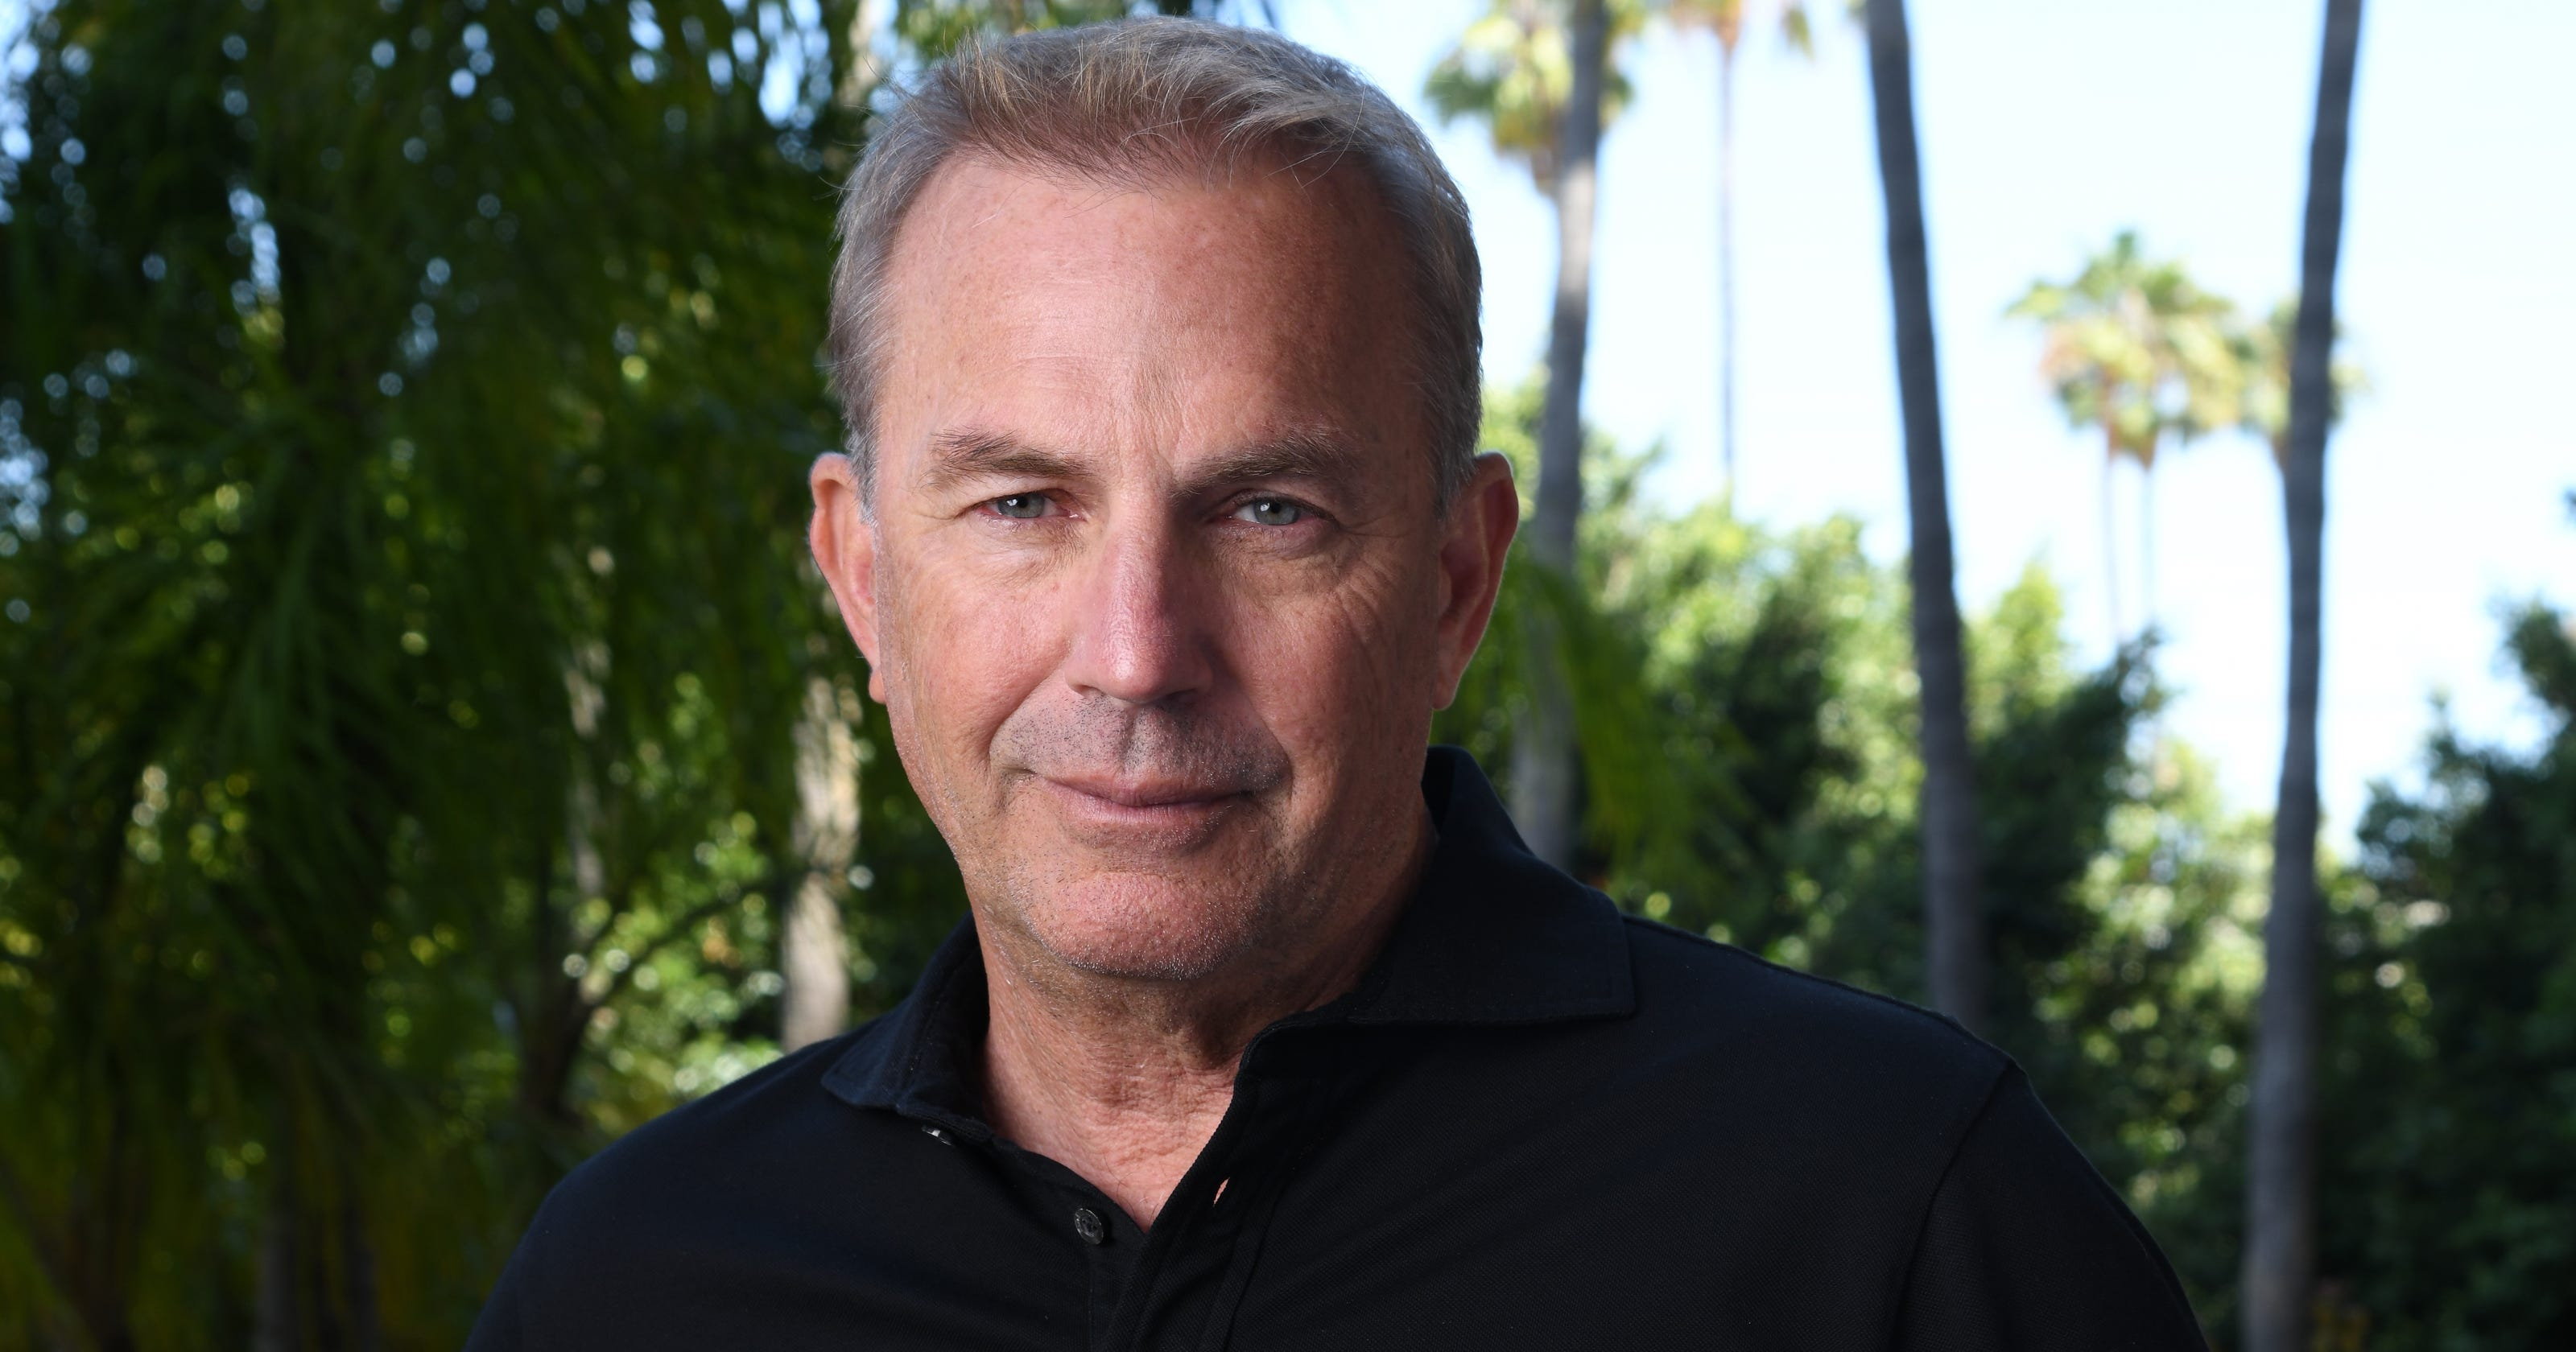 Kevin Costner adds Western cred to Paramount ranch drama